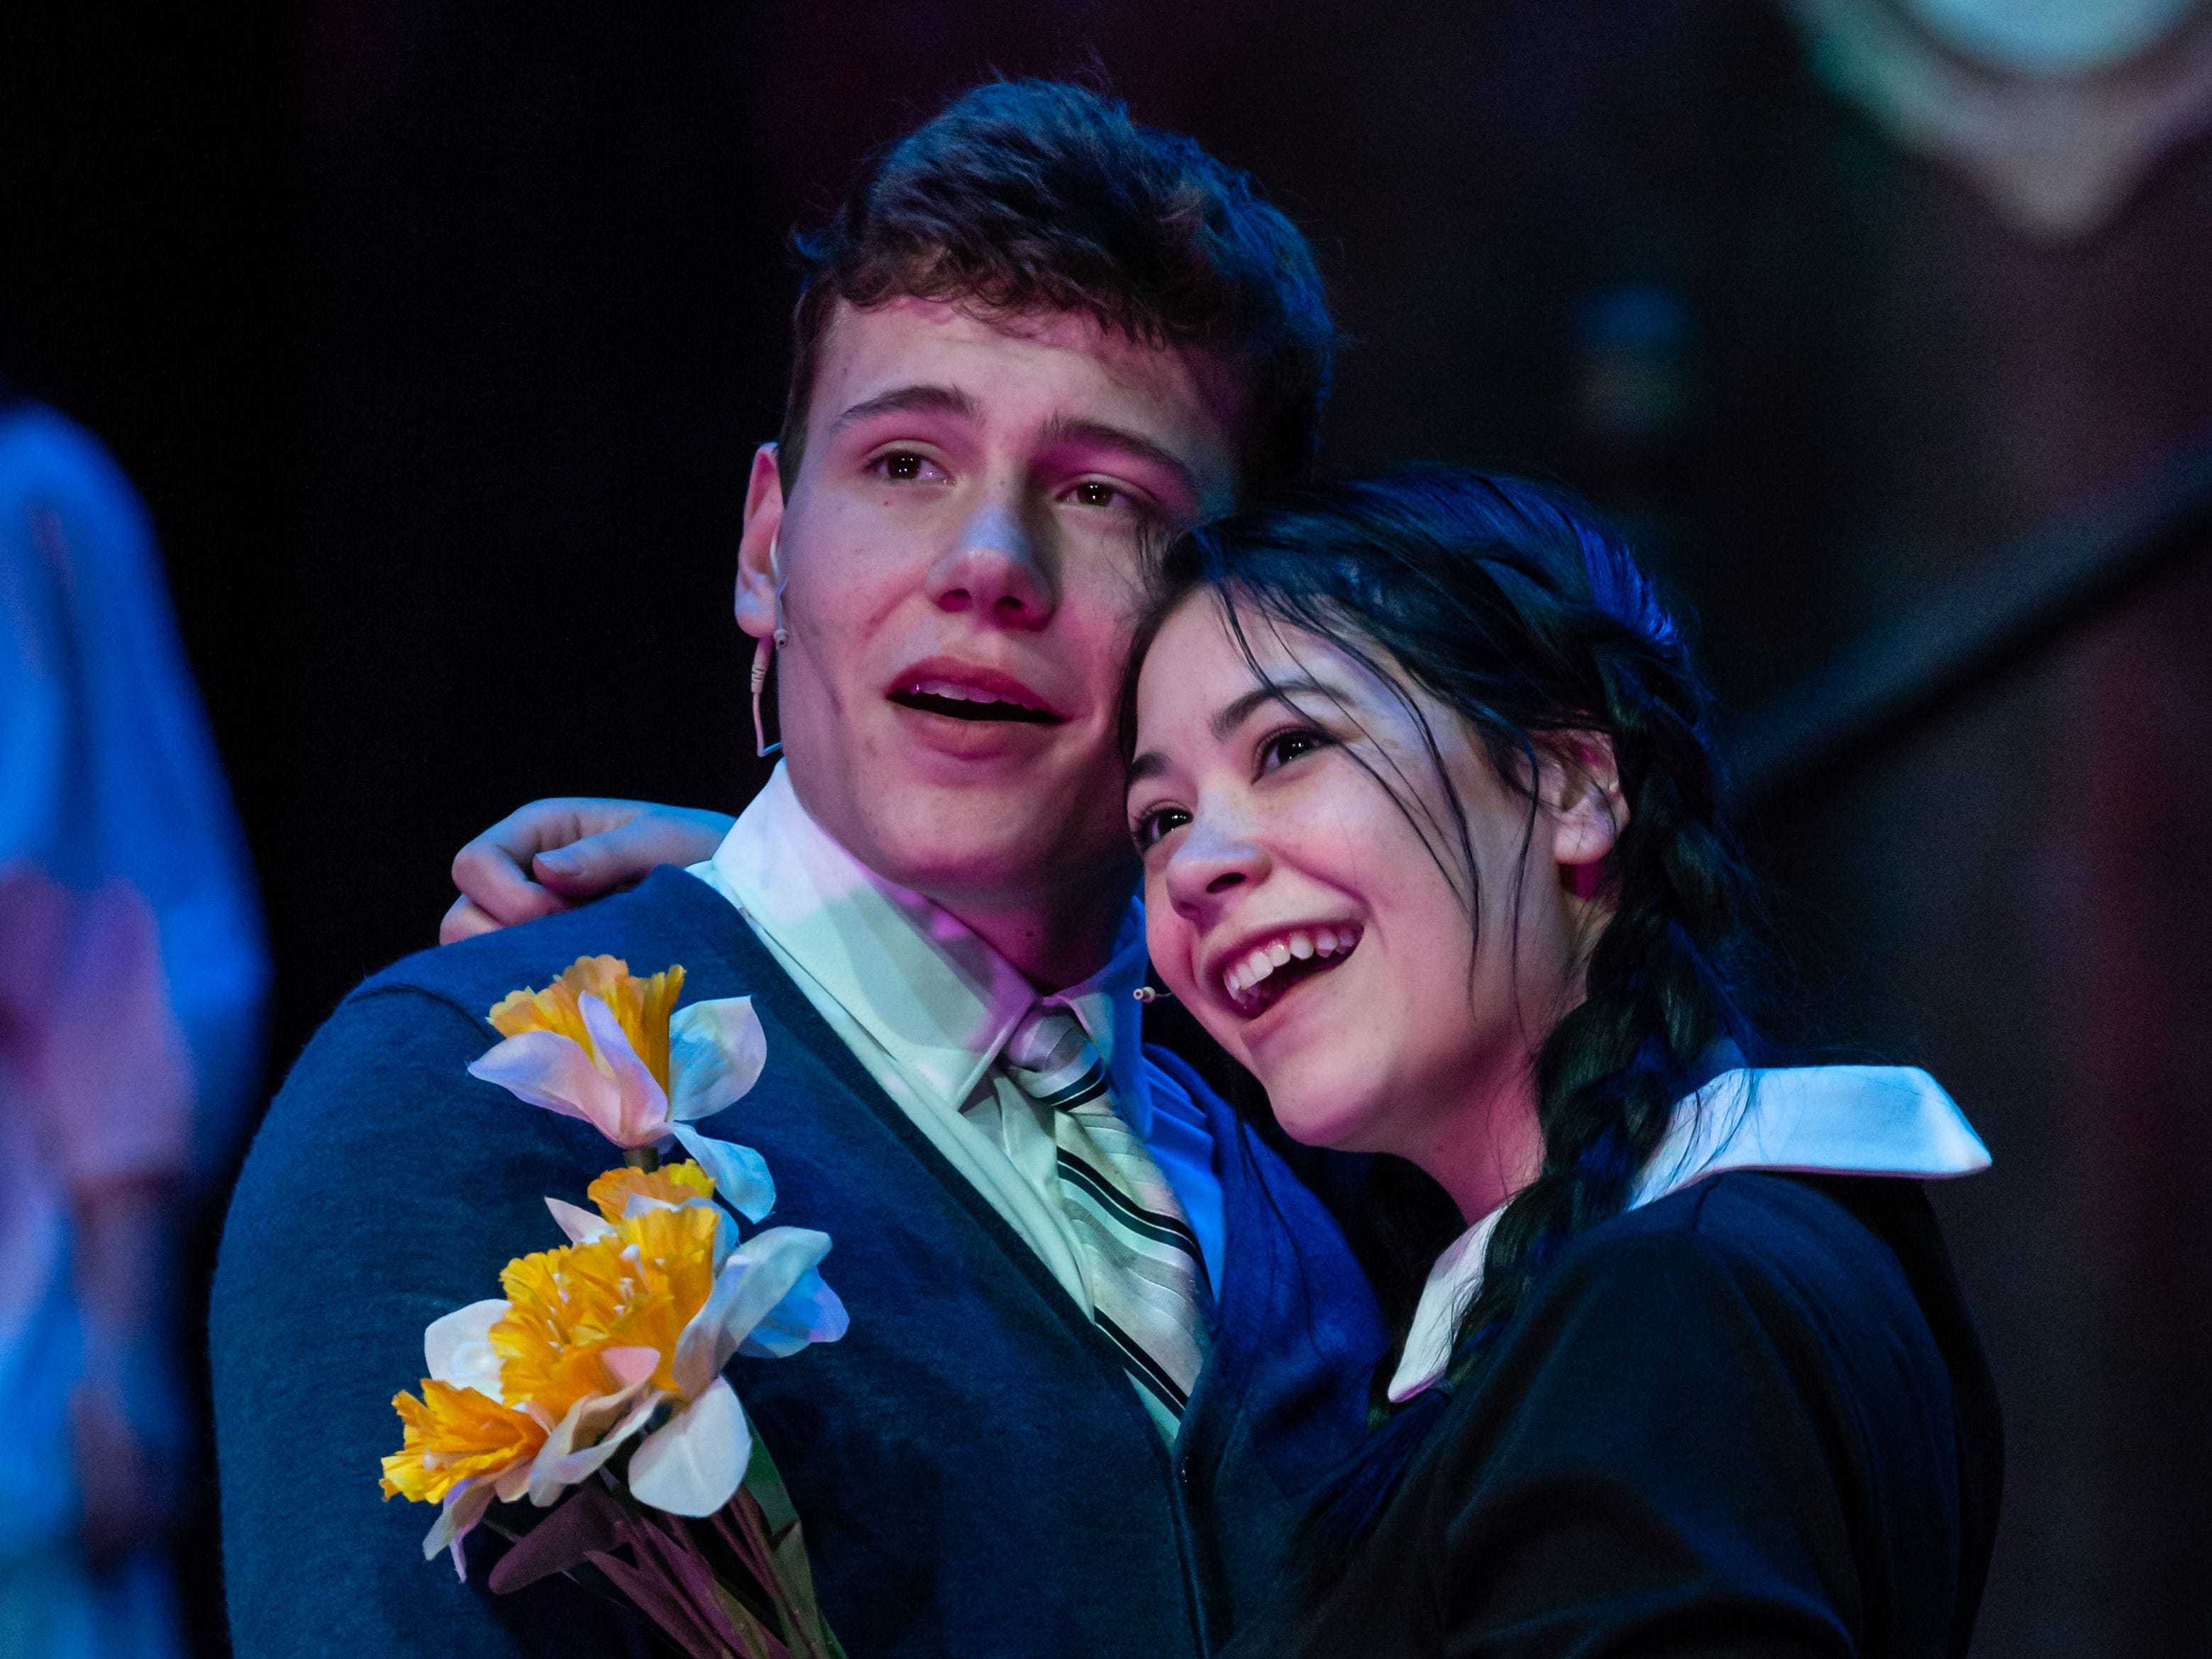 Mukwonago High School drama students Niko Dulin and Cecilia Fleischer perform a scene from the Addams Family Musical during dress rehearsal on Thursday, Feb. 21, 2019. Public performances will be Feb. 22, 23, 24 and March 1 and 2. Visit mukwonago.revtrak.net for times and tickets.